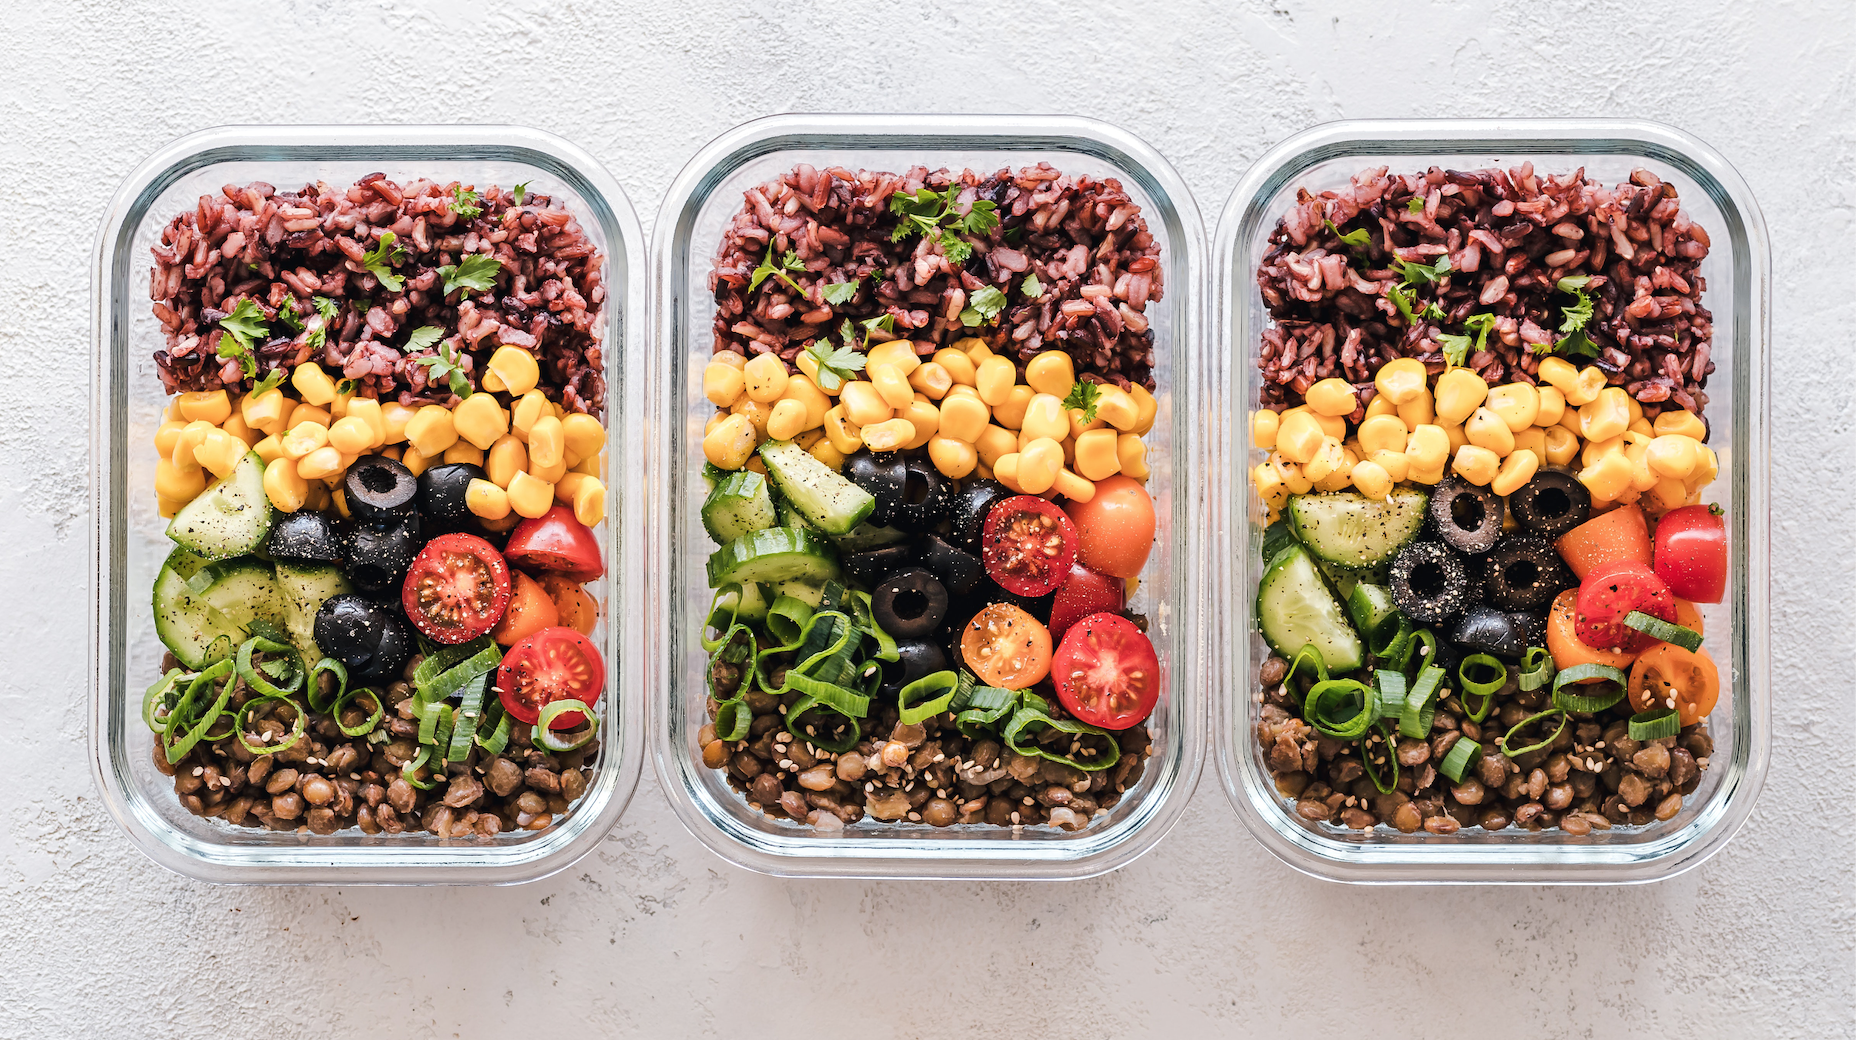 Three glass lock containers containing the same meal of brown rice, corn, cucumber slices, black olives, cherry tomatoes, green onion, and lentils.